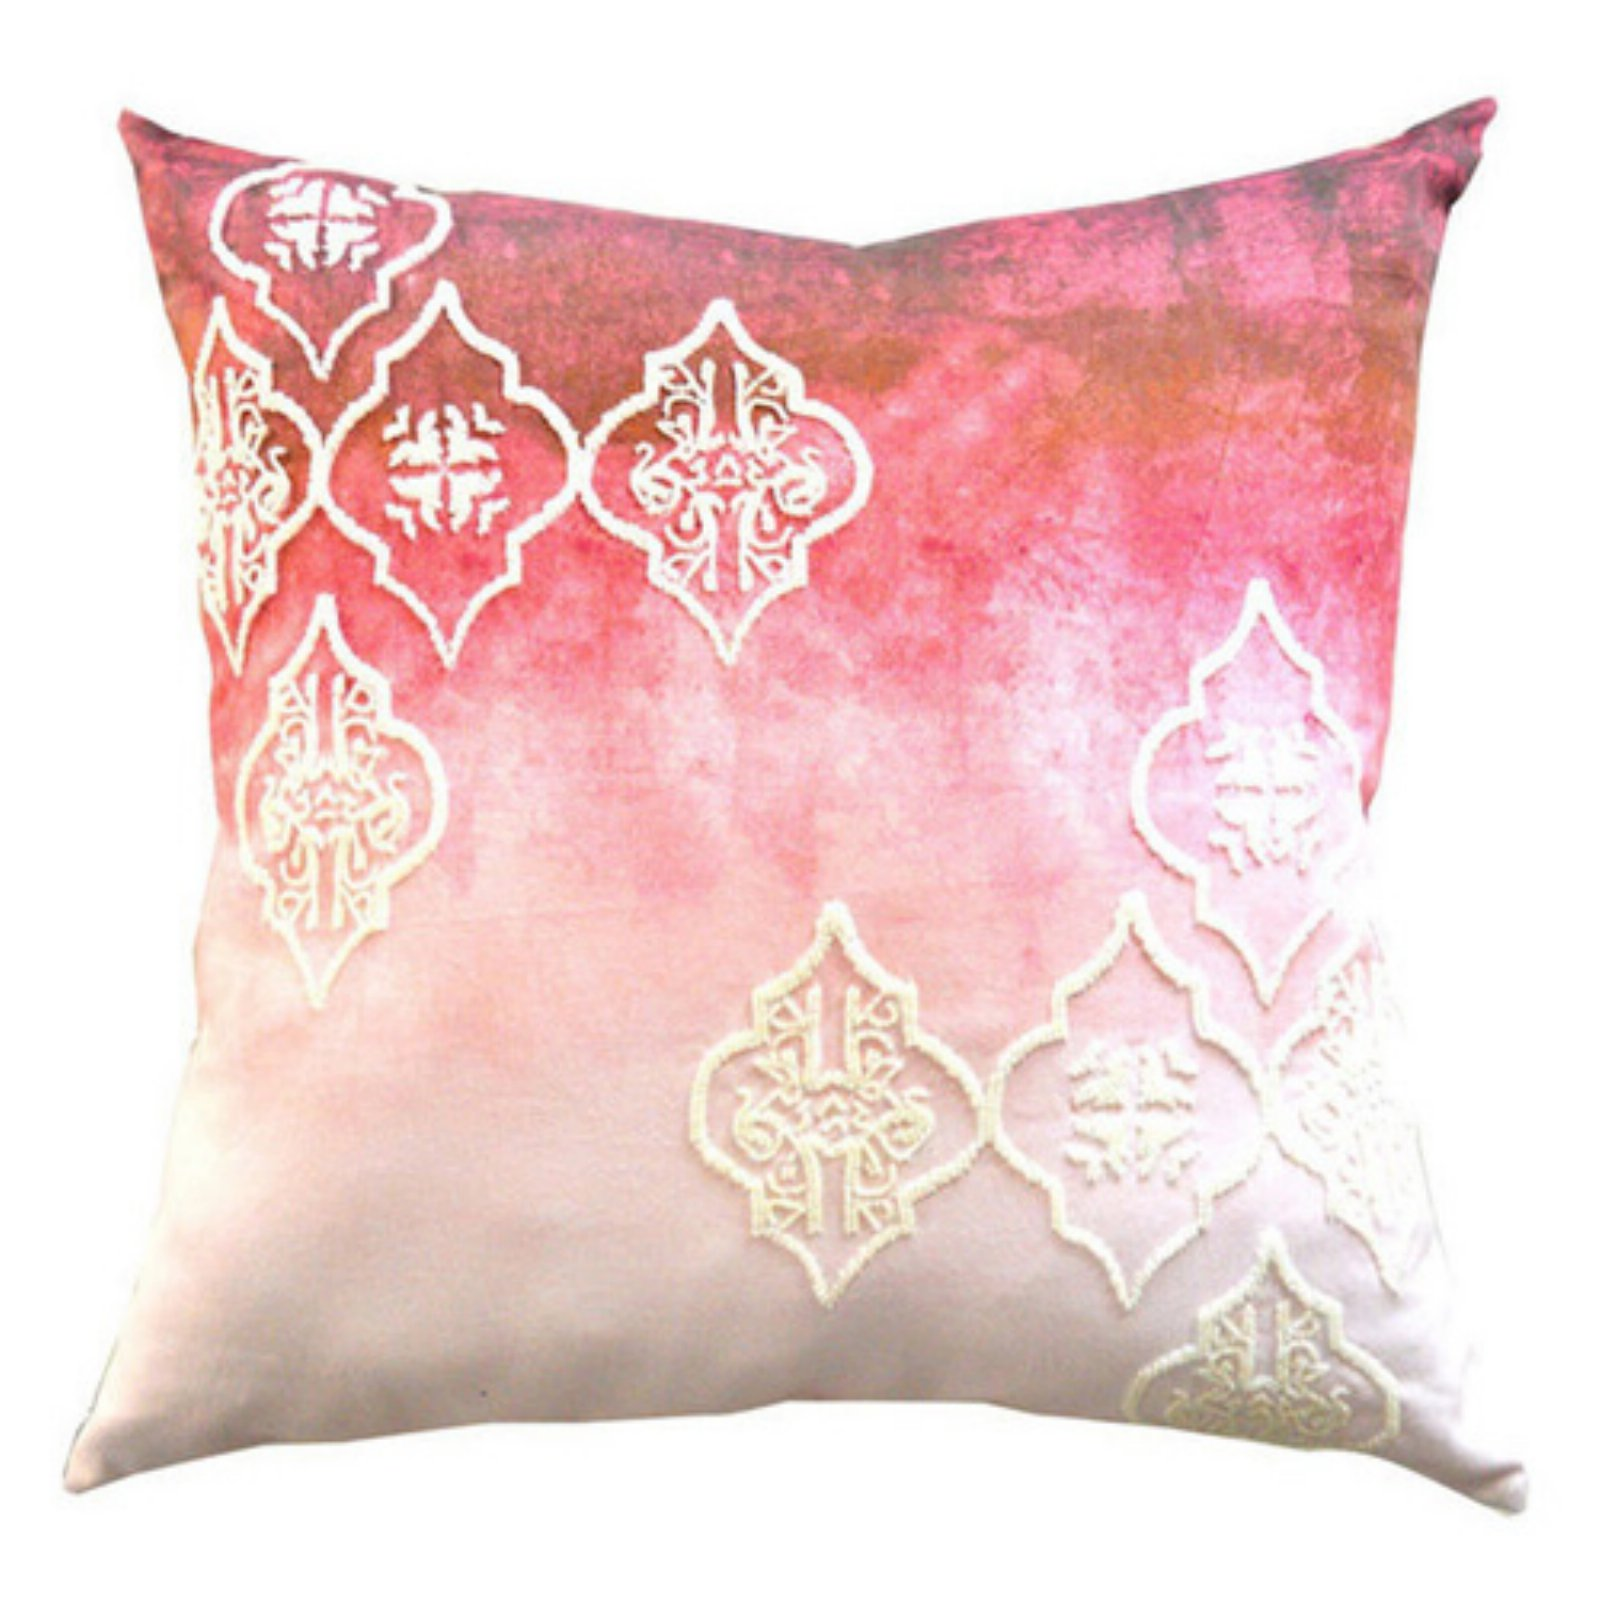 Image of A1 Home Collections Beaded Ogee Decorative Designer Throw Pillow